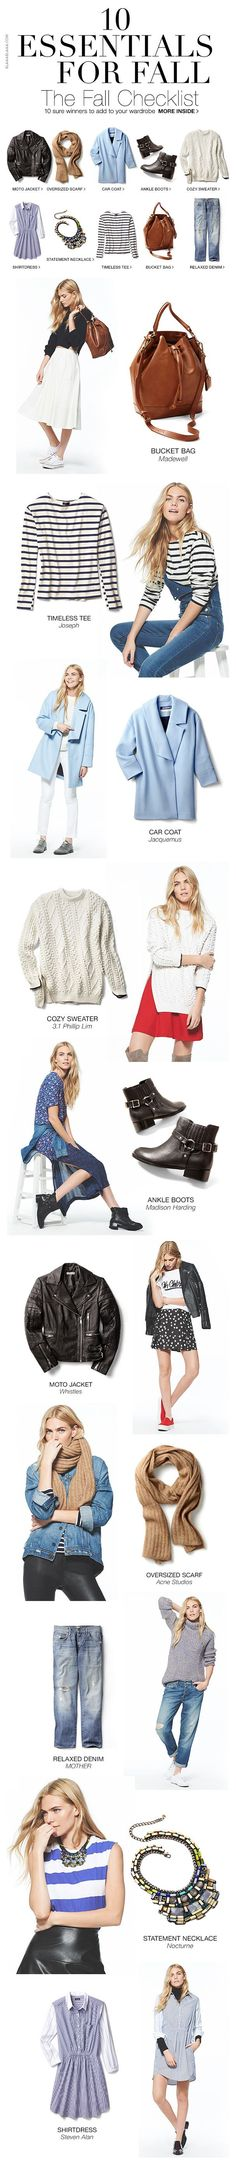 (42) Shopbop – 10 Essentials for Fall | Style my wardrobe: Autumn/Winter |…